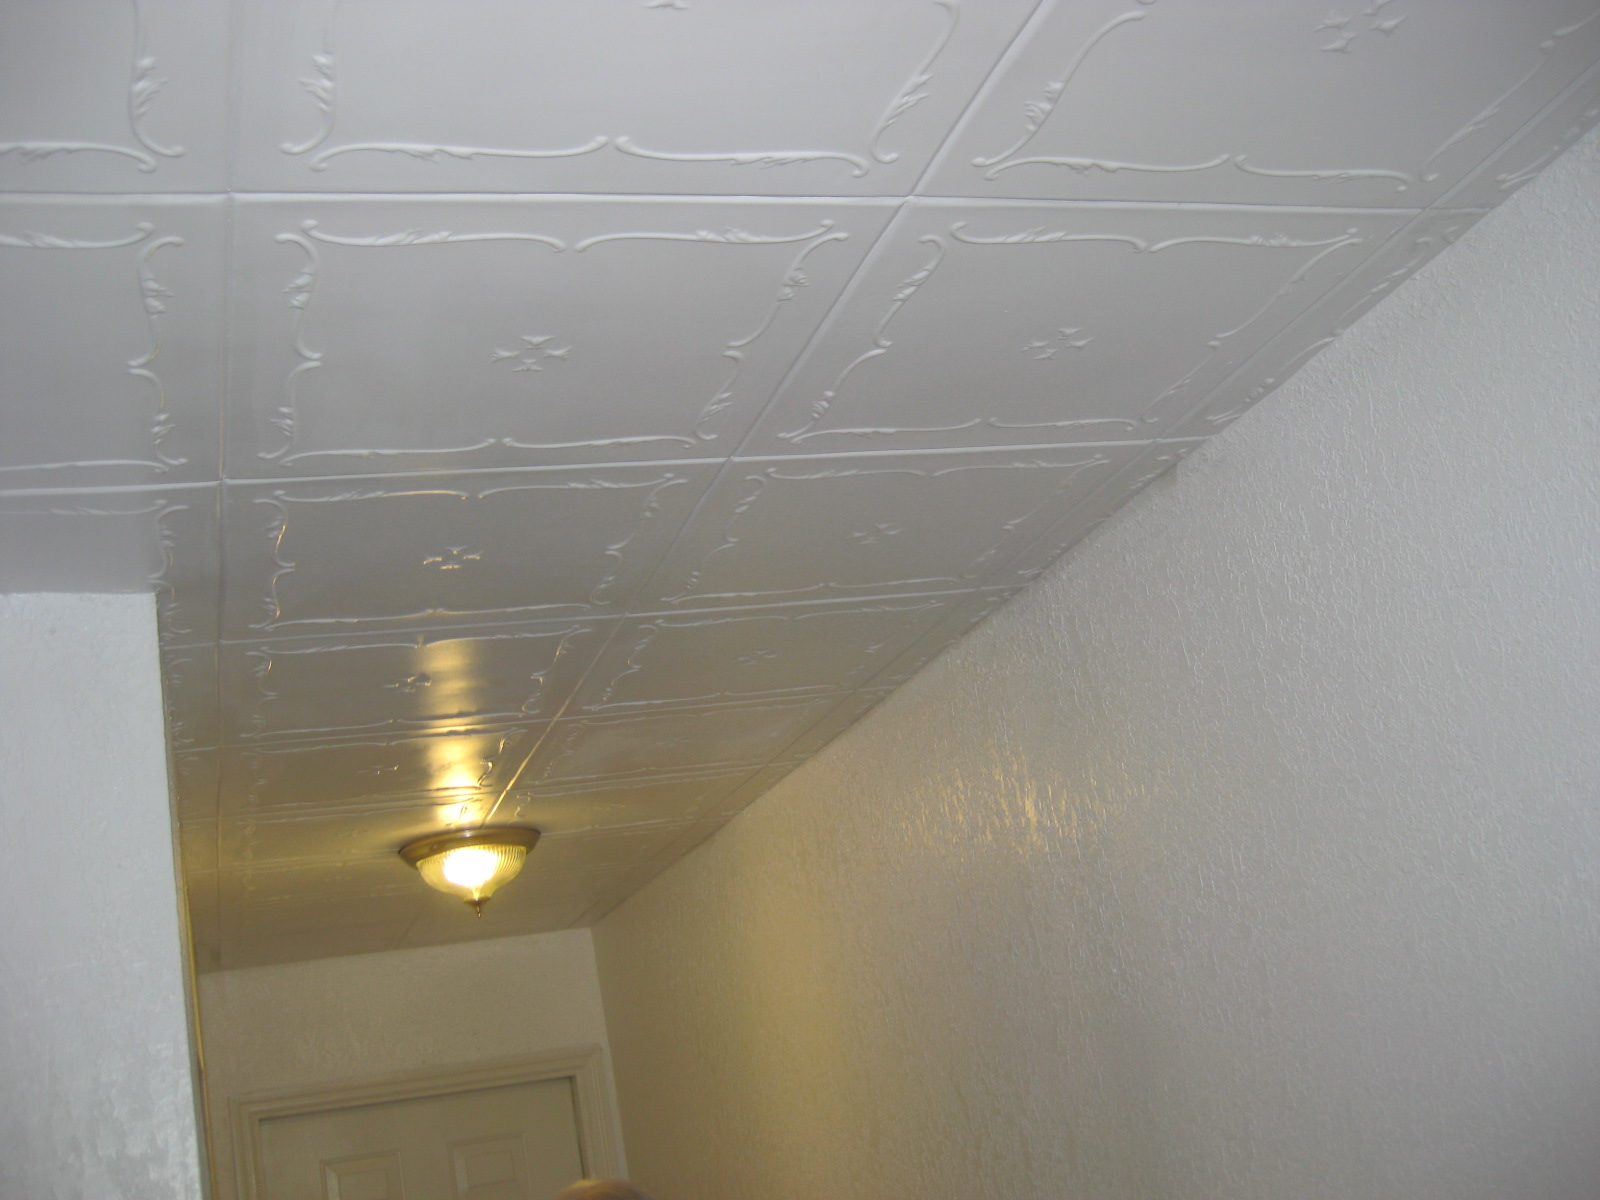 Styrofoam ceiling tiles installed styrofoam r 5 2 dailygadgetfo Image collections